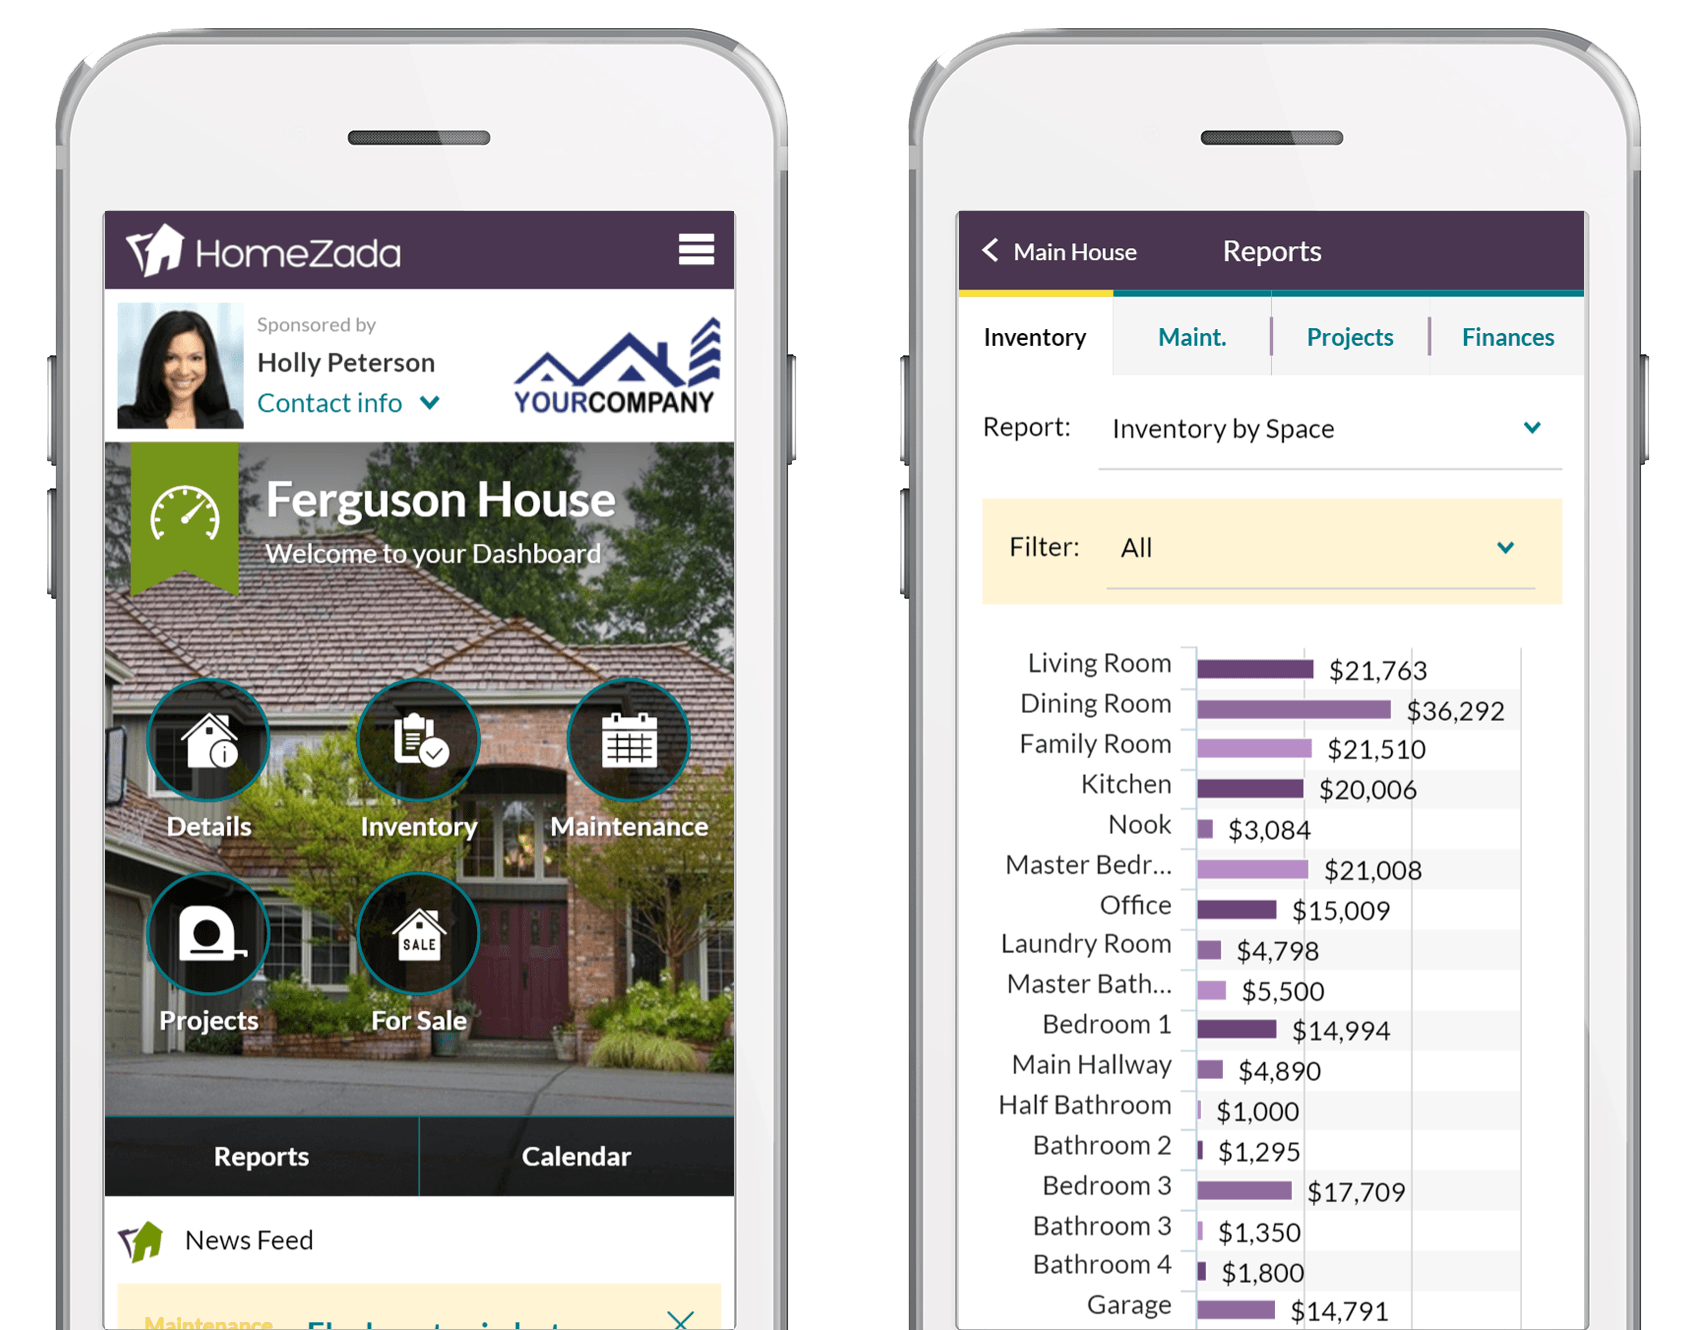 Homezada pro for insurance carriers and brokers.png